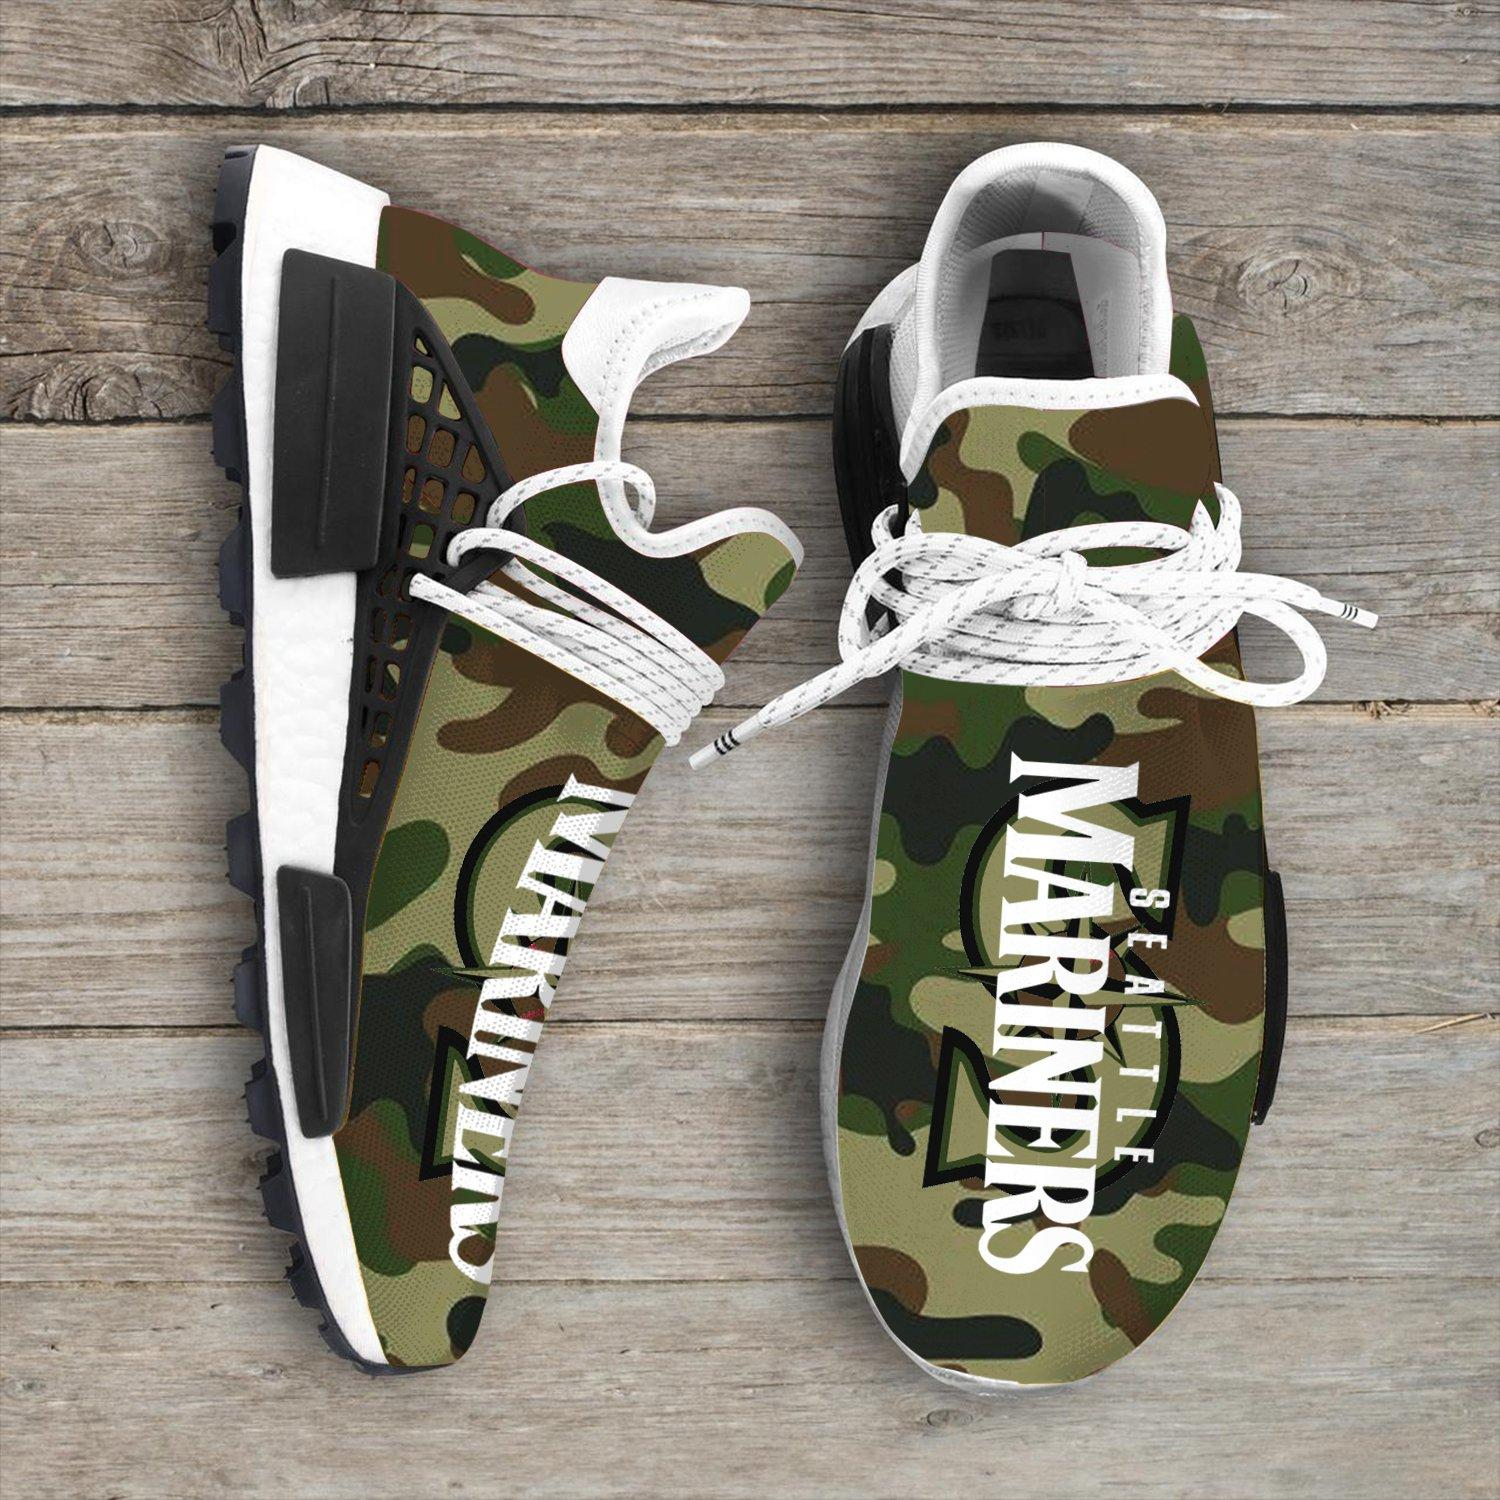 Camo Camouflage Seattle Mariners Mlb Sport Teams NMD Human Shoes